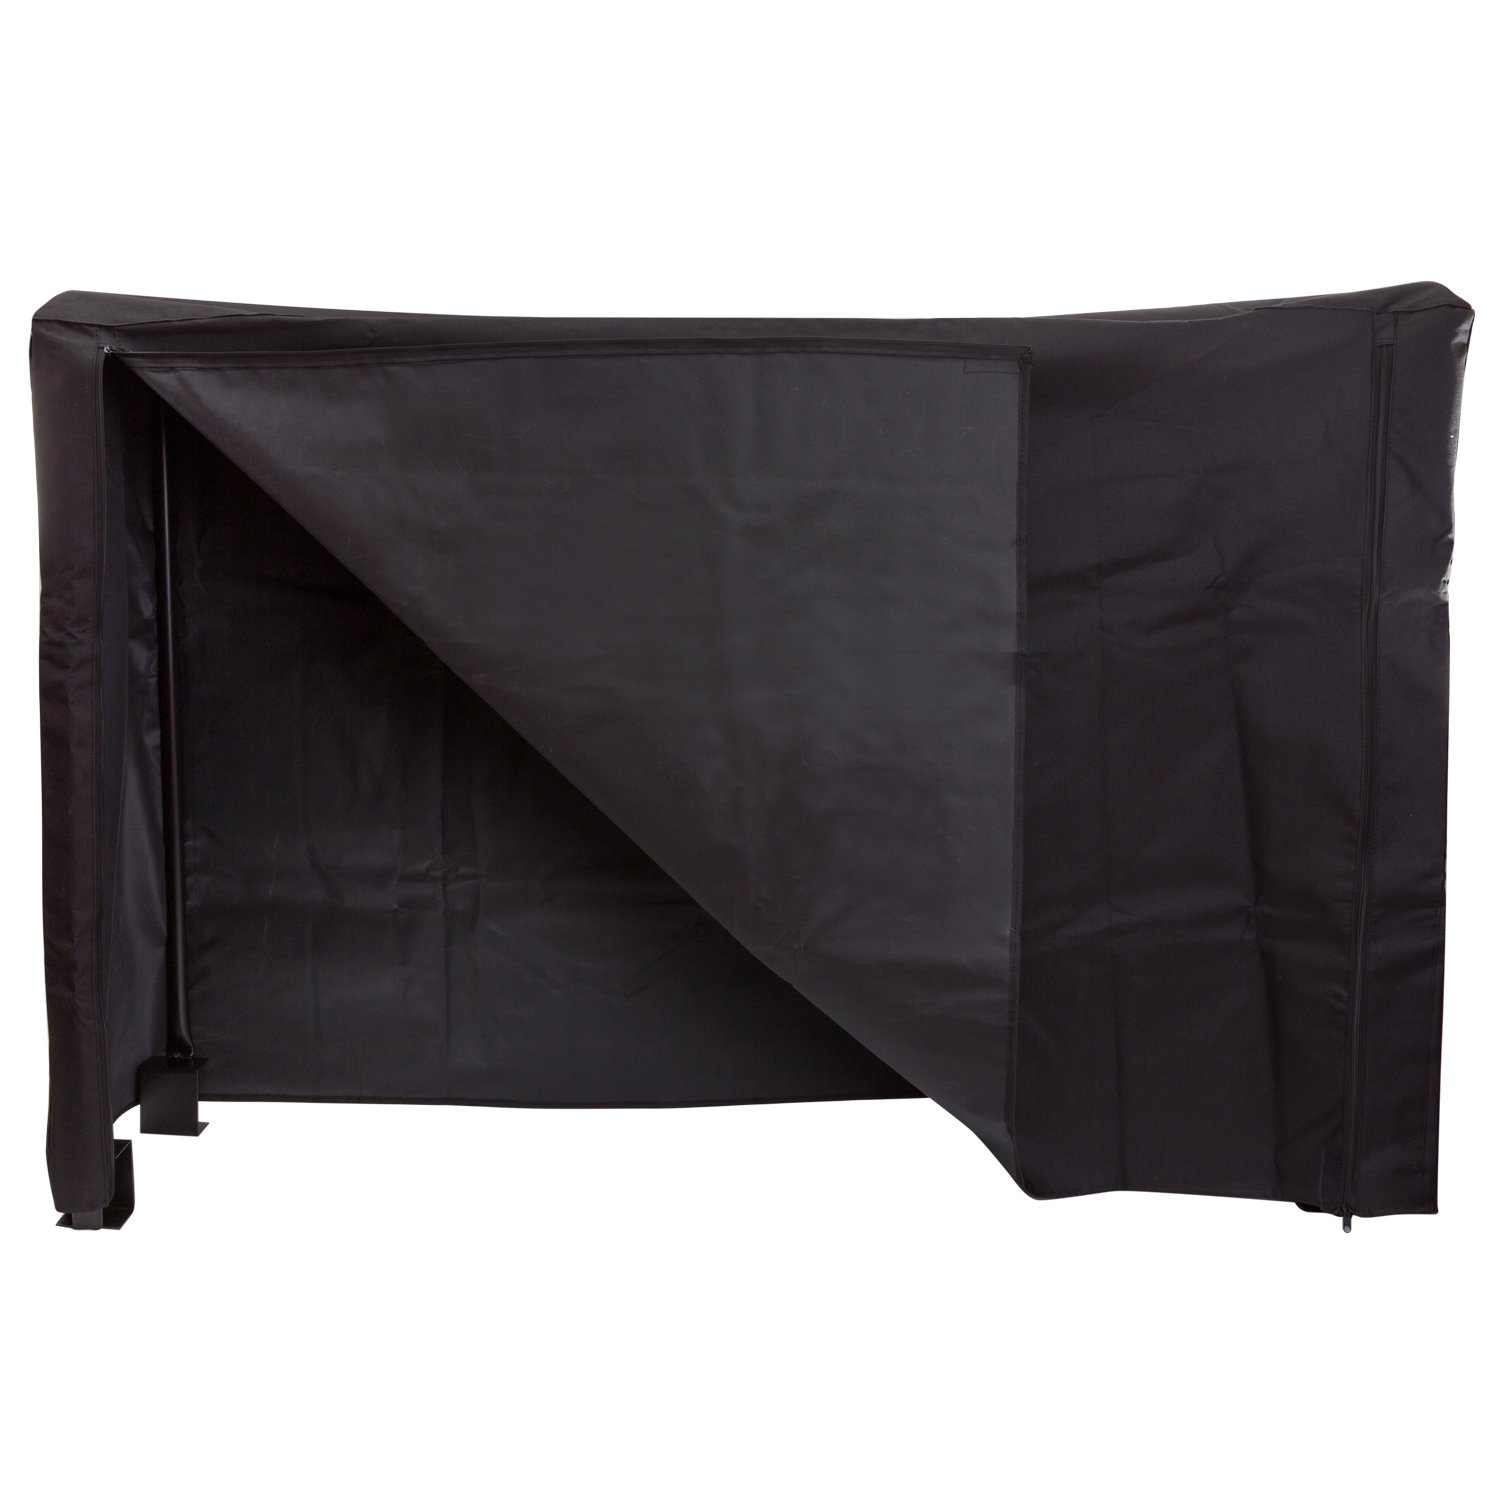 DOEWORKS 4 Feet Firewood Cover Log Wood Storage Rack Cover with Magic Tape, Fireplace Accessories, Black HY-FRC4